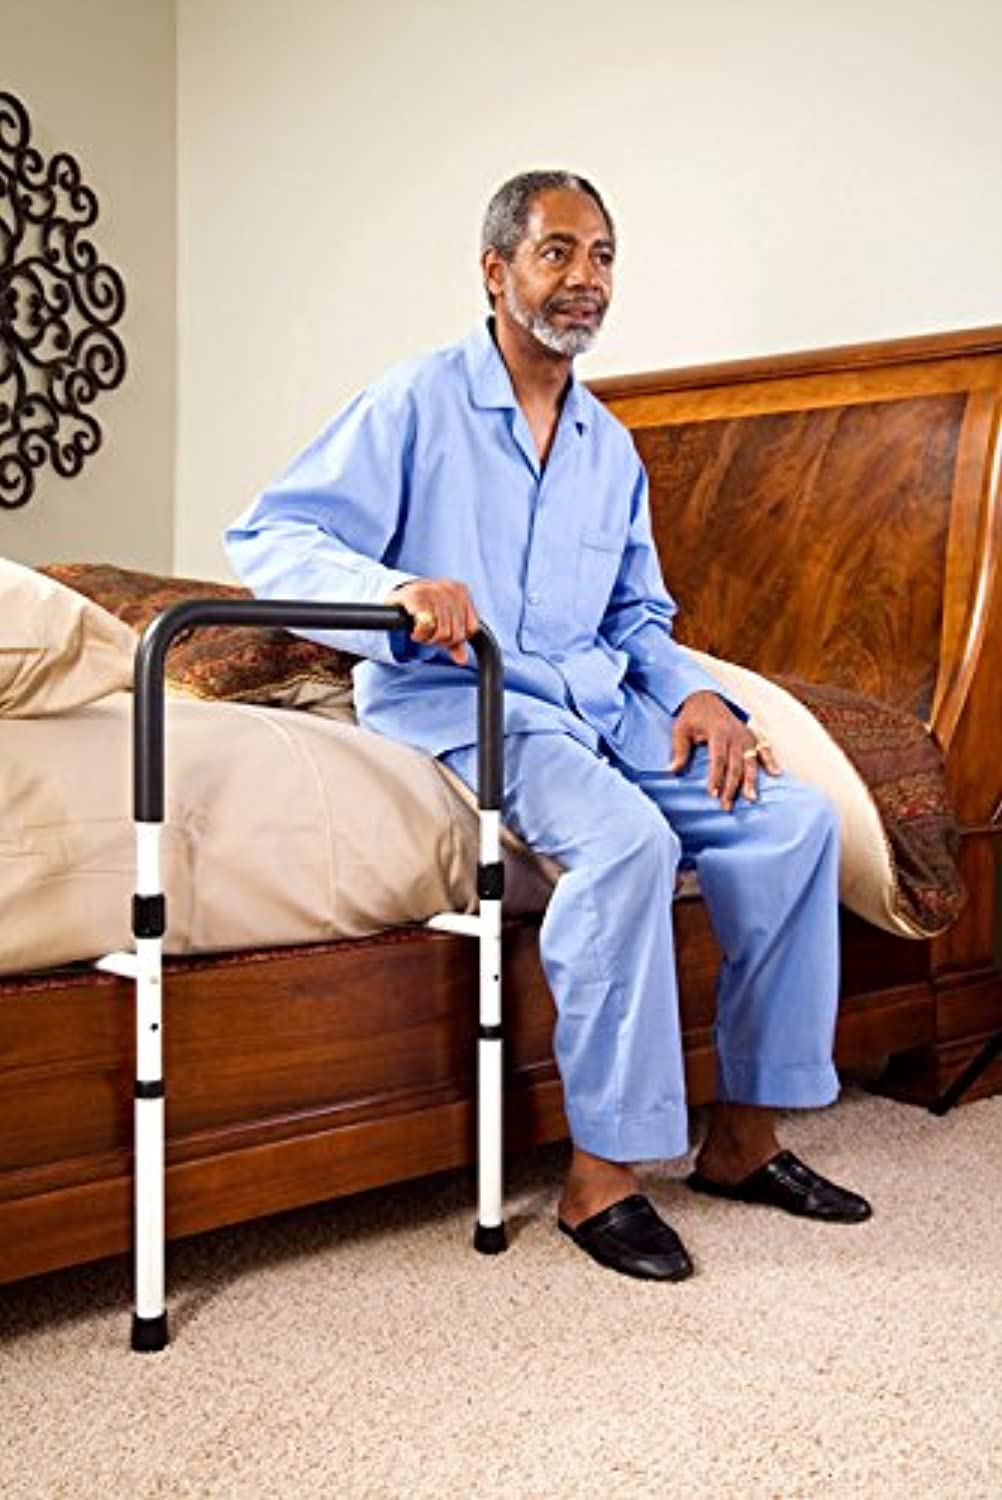 Classier: Buy Vaunn Medical Adjustable Bed Assist Rail Handle and Hand Guard Grab Bar, Bedside Safety and Stability (Tool-Free Assembly)